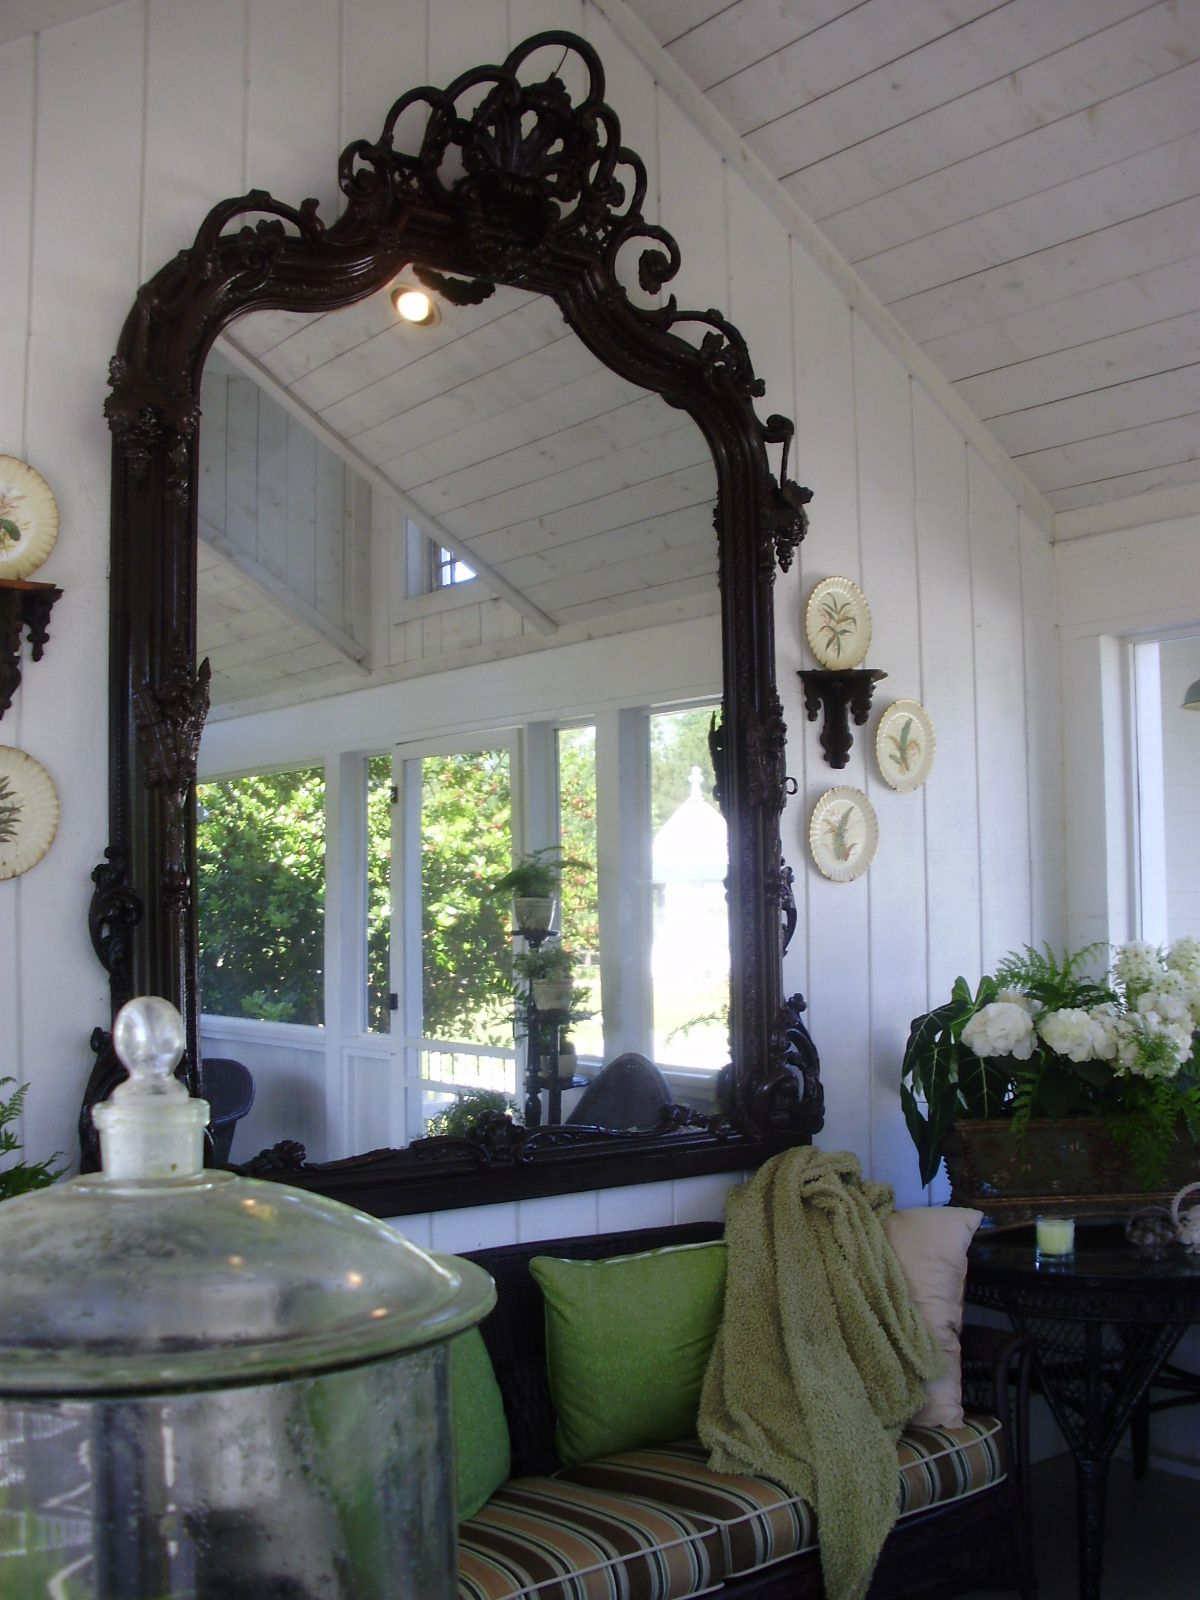 A mirror on the porch now why didnt i think of that